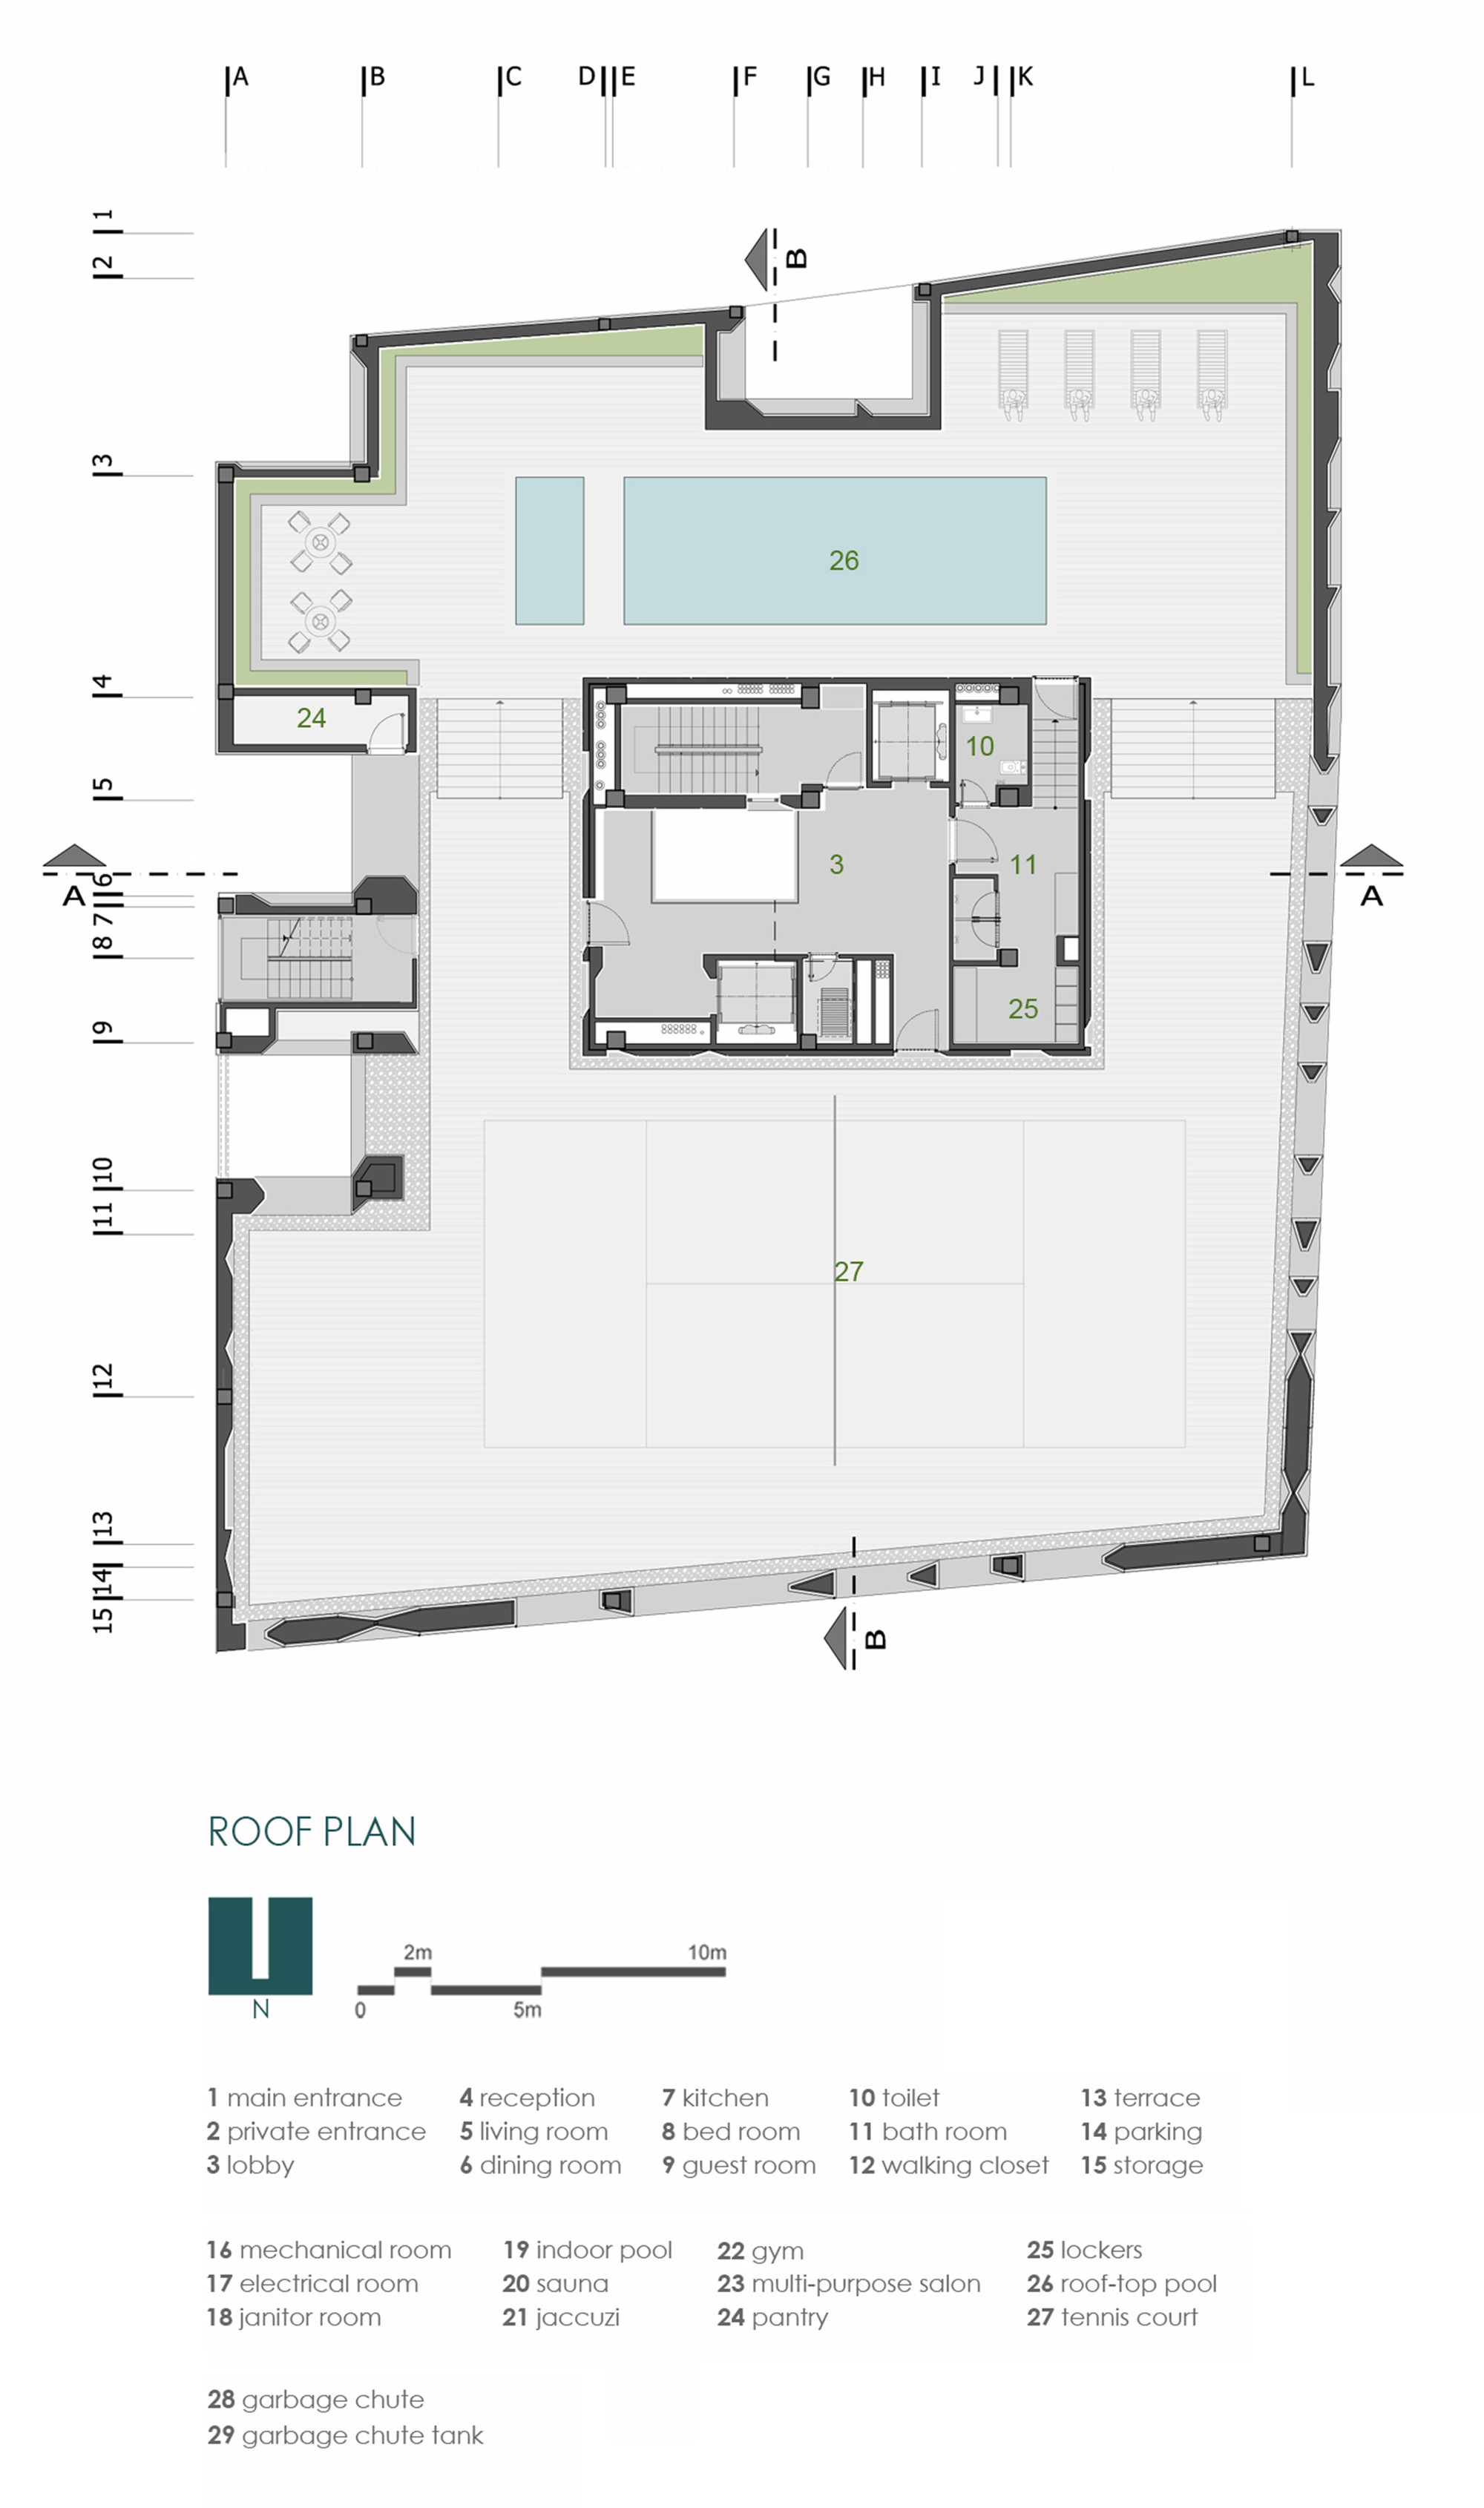 Gallery of sipan residential building ryra studio 20 for Residential building floor plan